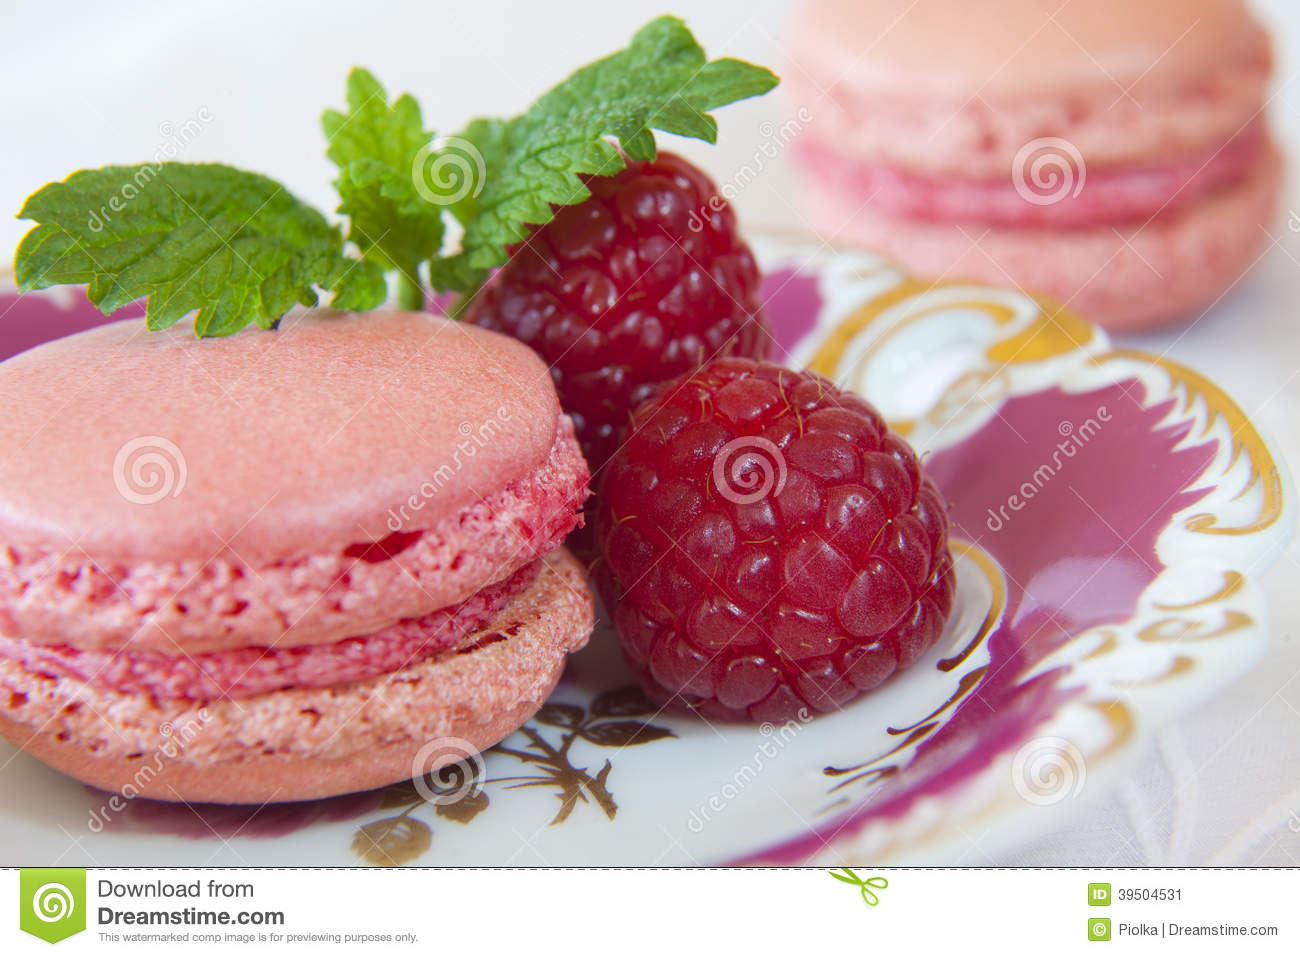 Macarons dolce